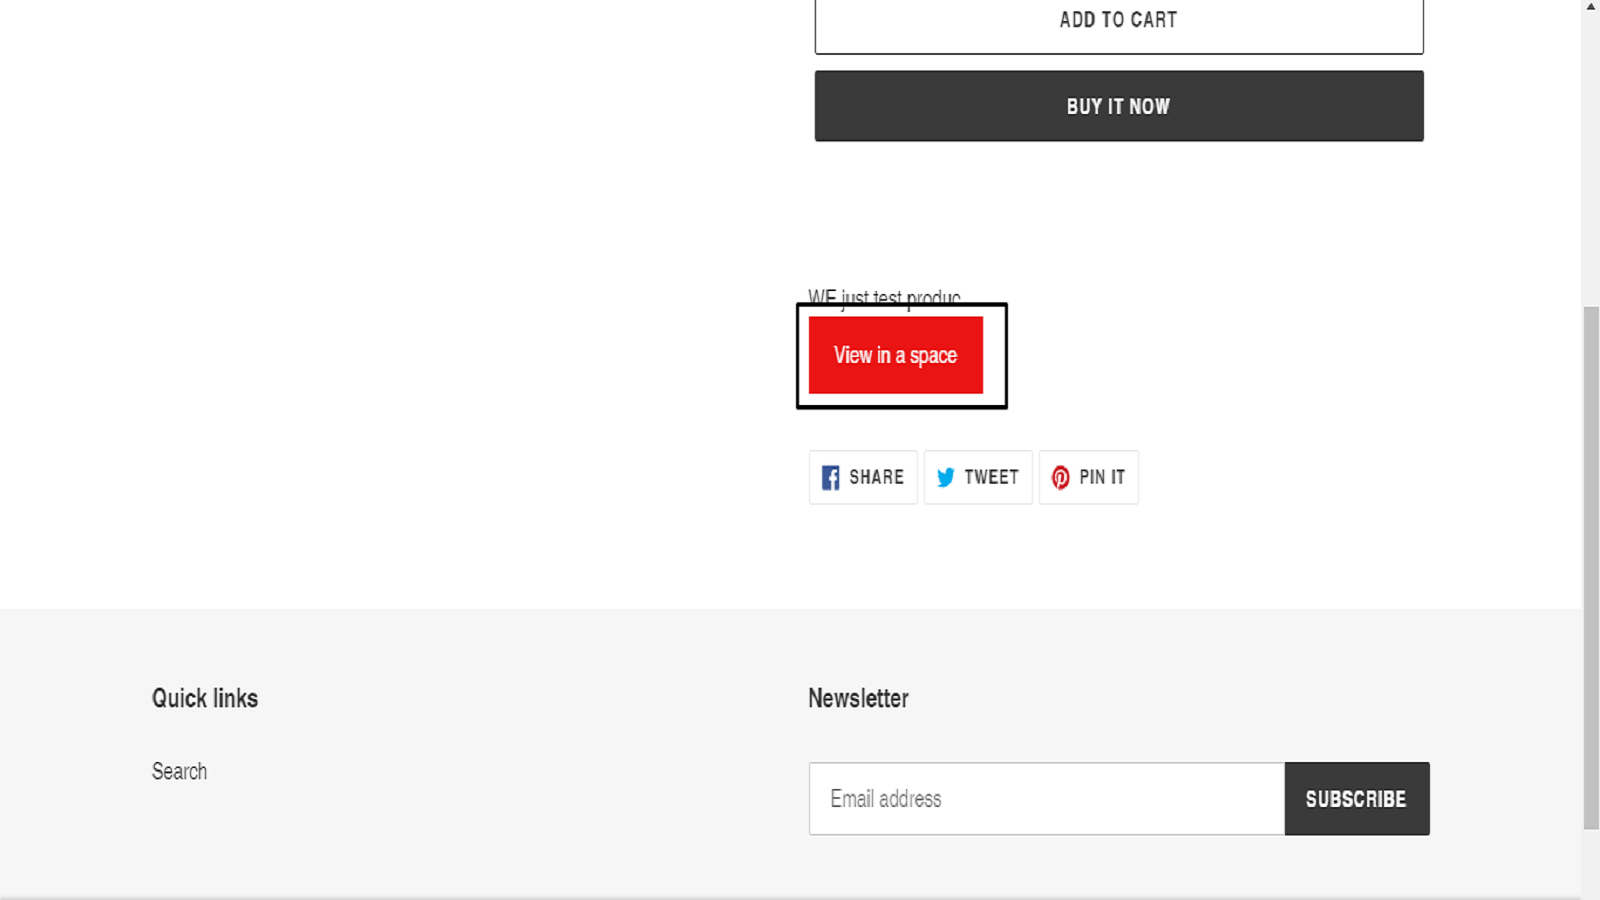 Check added button in the product page of the store